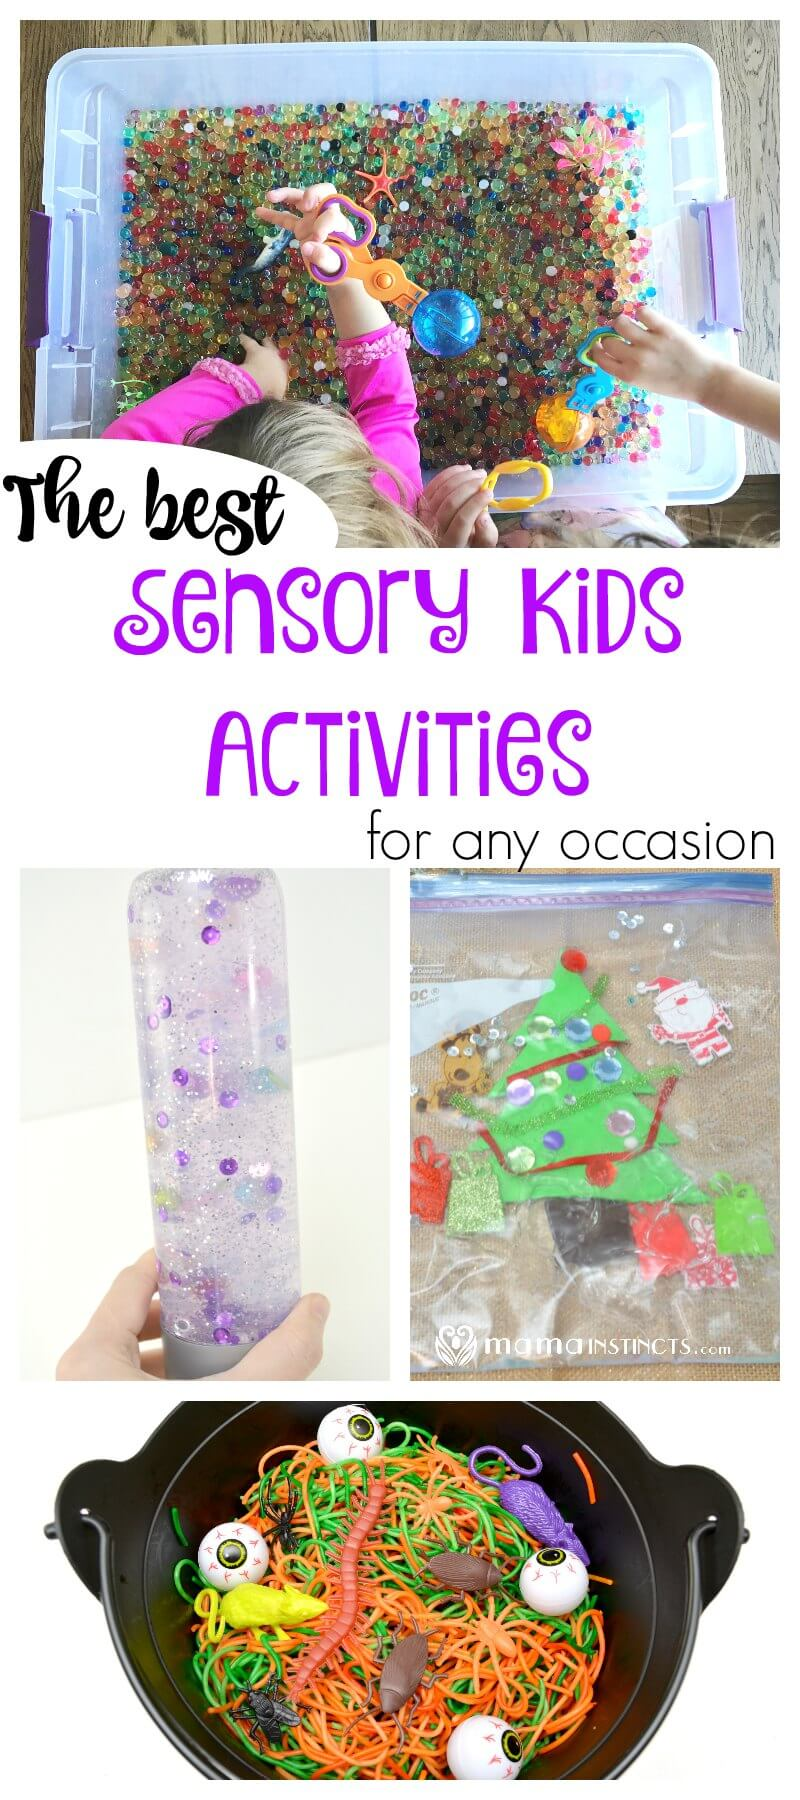 Sensory kid activities are great for child development and very affordable to make. Try these 4 ways to create a sensory activity your child will absolutely love: sensory bag, sensory bottle, sensory spaghetti and water bead sensory play.